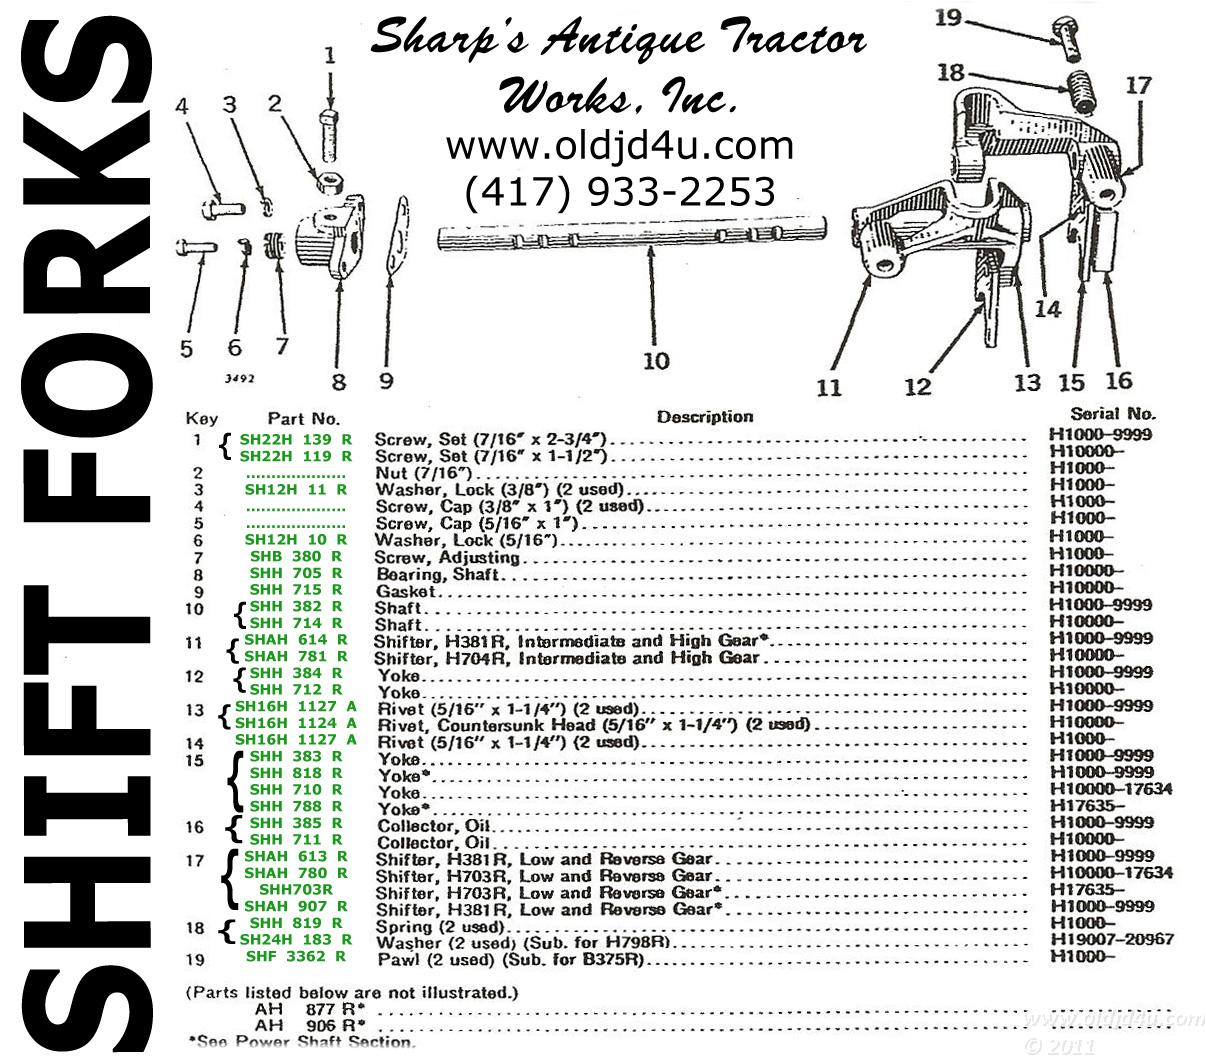 John Deere 2 Cyl Tractor Oldjdforyou Parts H. John Deere H Parts Catalog Shift Forks. John Deere. John Deere B Transmission Shifter Diagram At Scoala.co